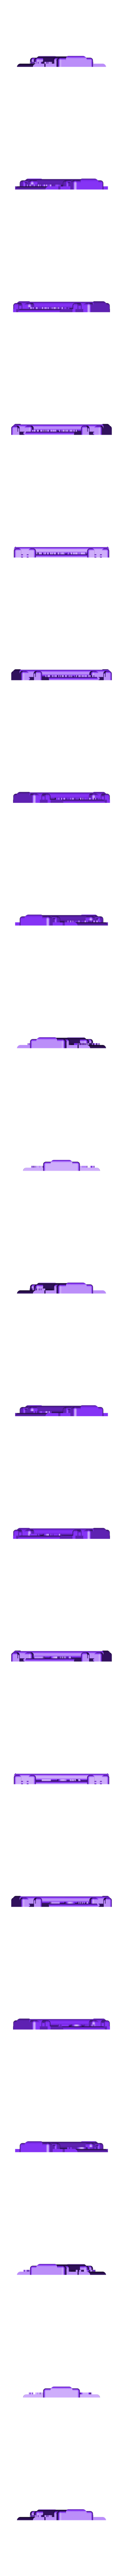 Light_V3.stl Download free STL file Measure the Speed of Light With Chocolate! • 3D printable design, Yuval_Dascalu